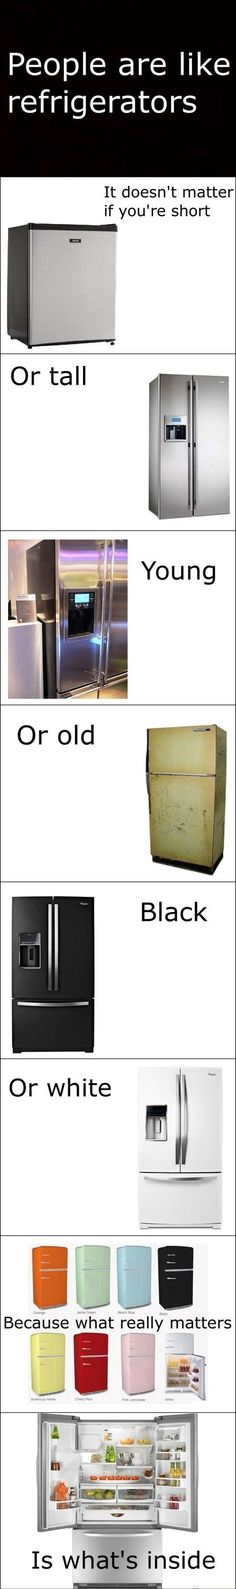 People Are Just Like Refrigerators #lol #haha #funny